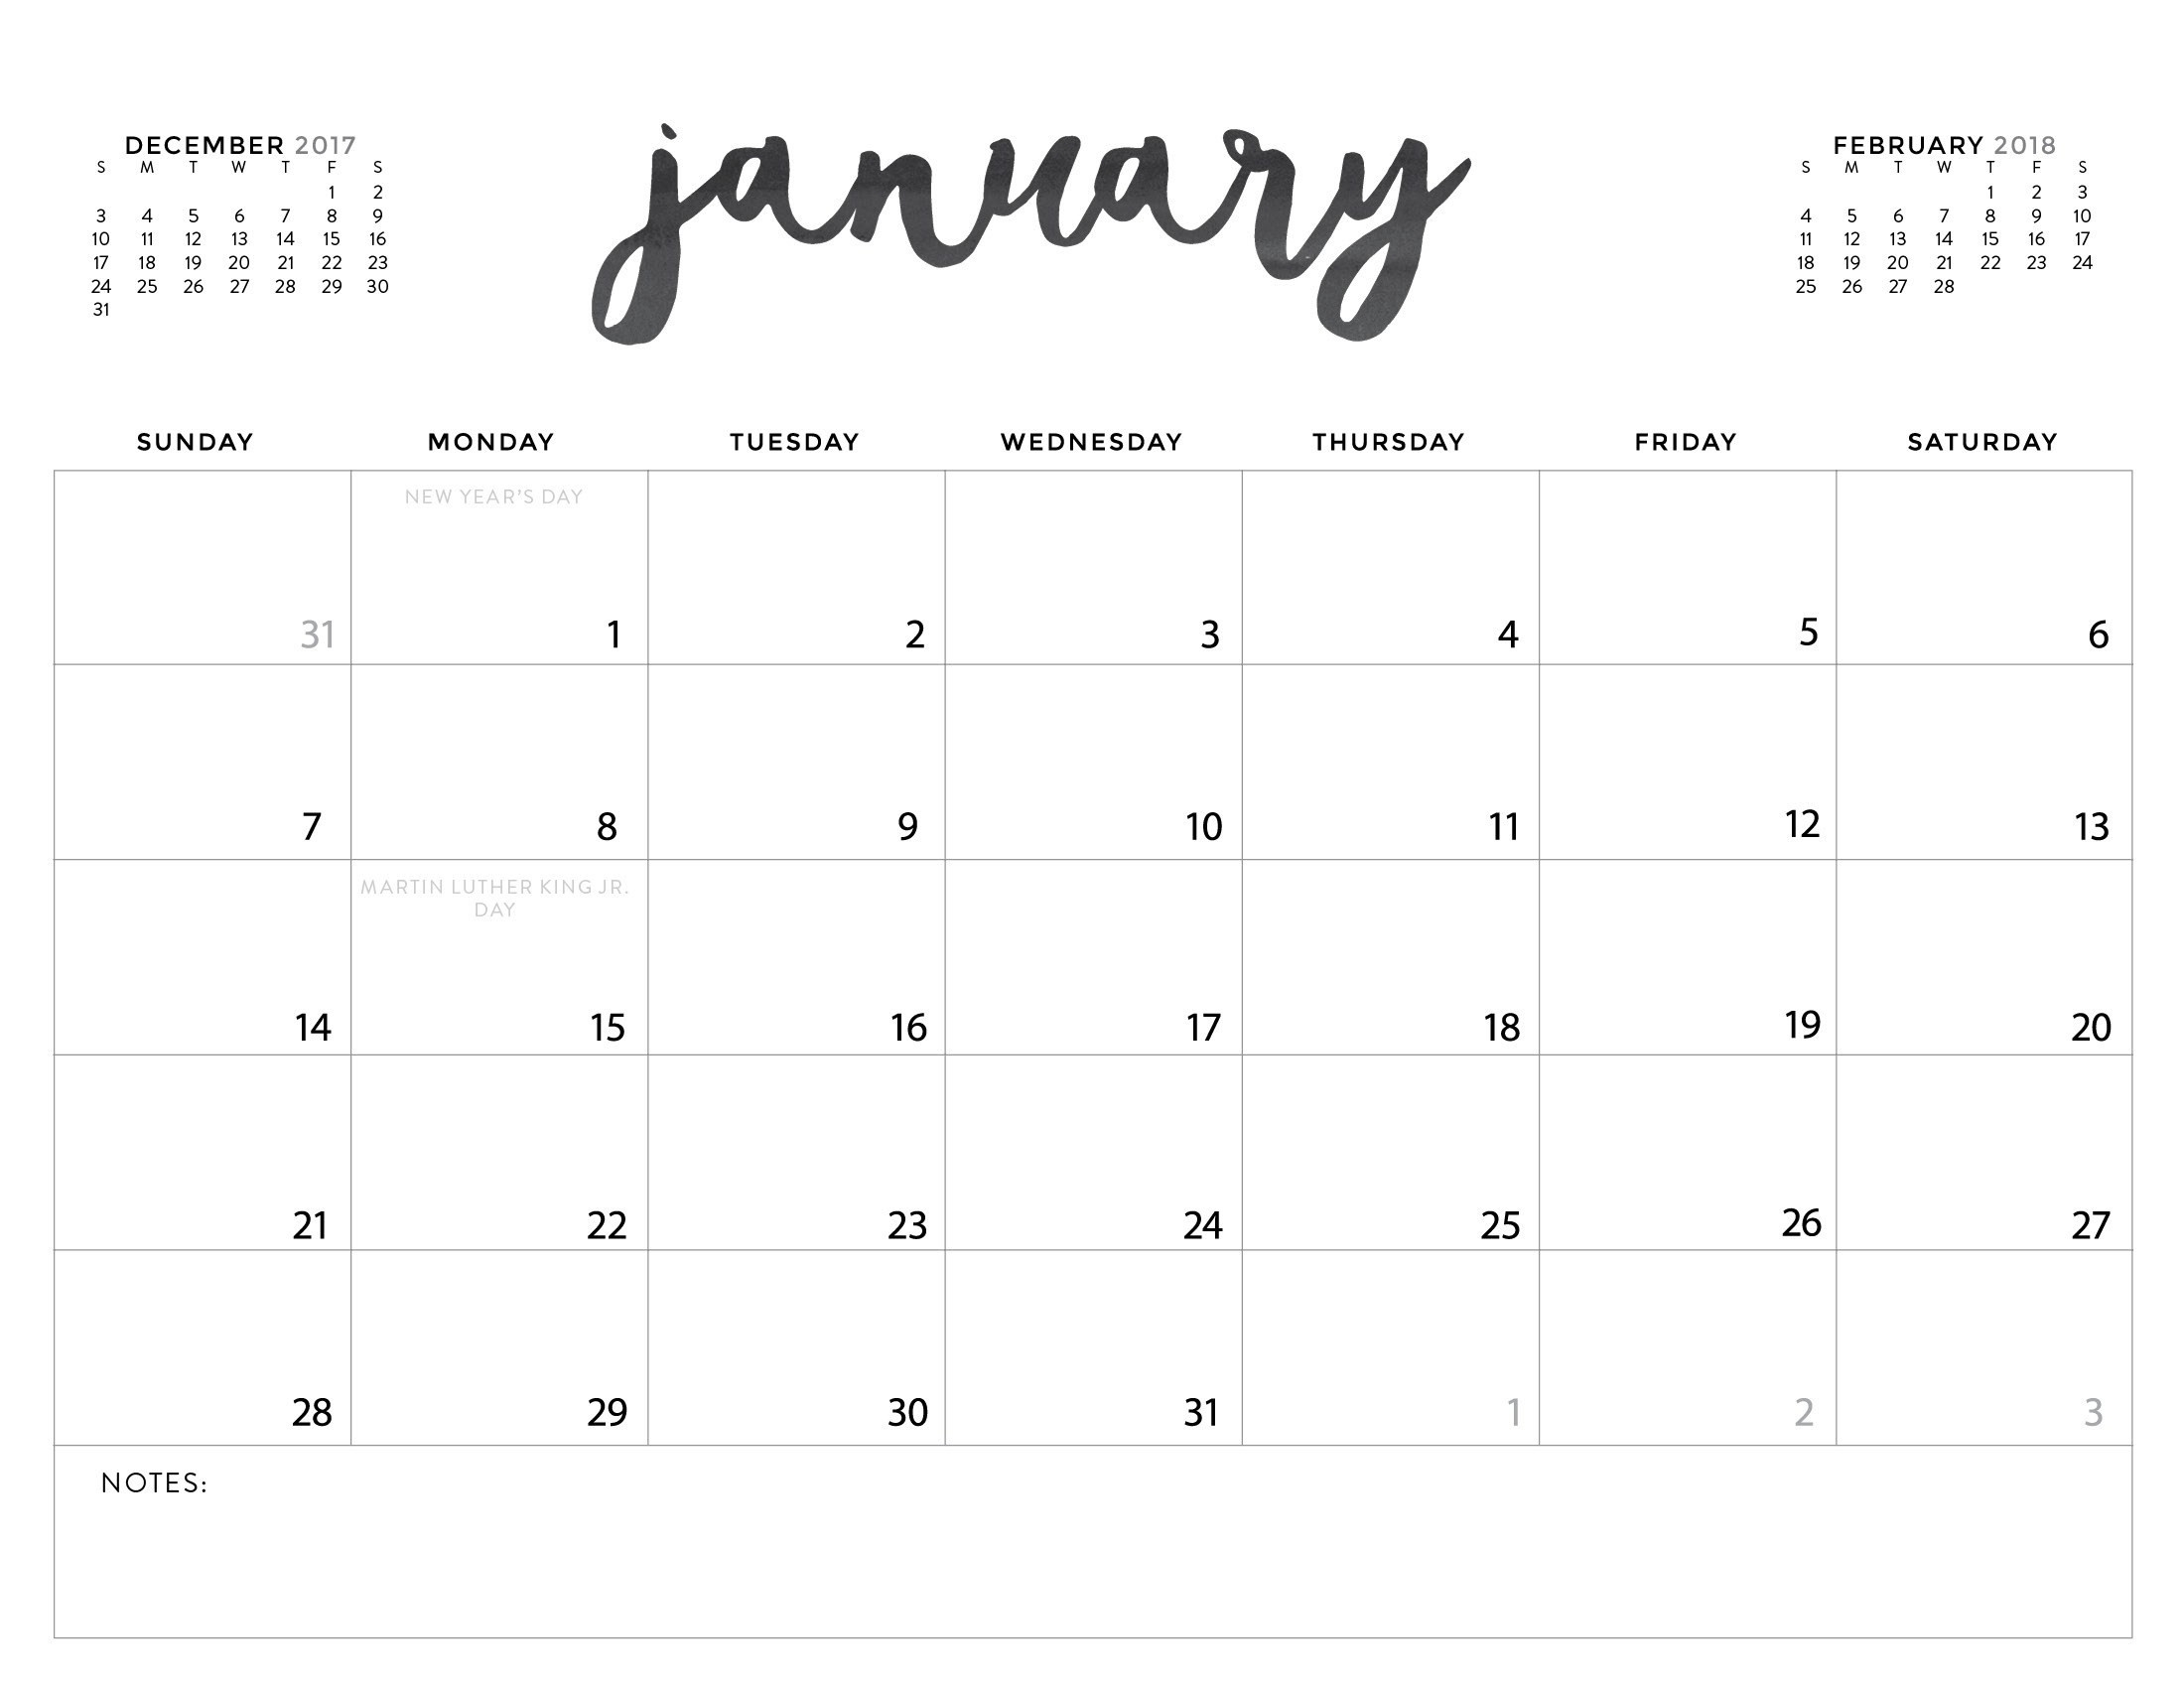 2018 Free Calendar Printables | Jill Davis Design  Free Calendars To Print Without Downloading